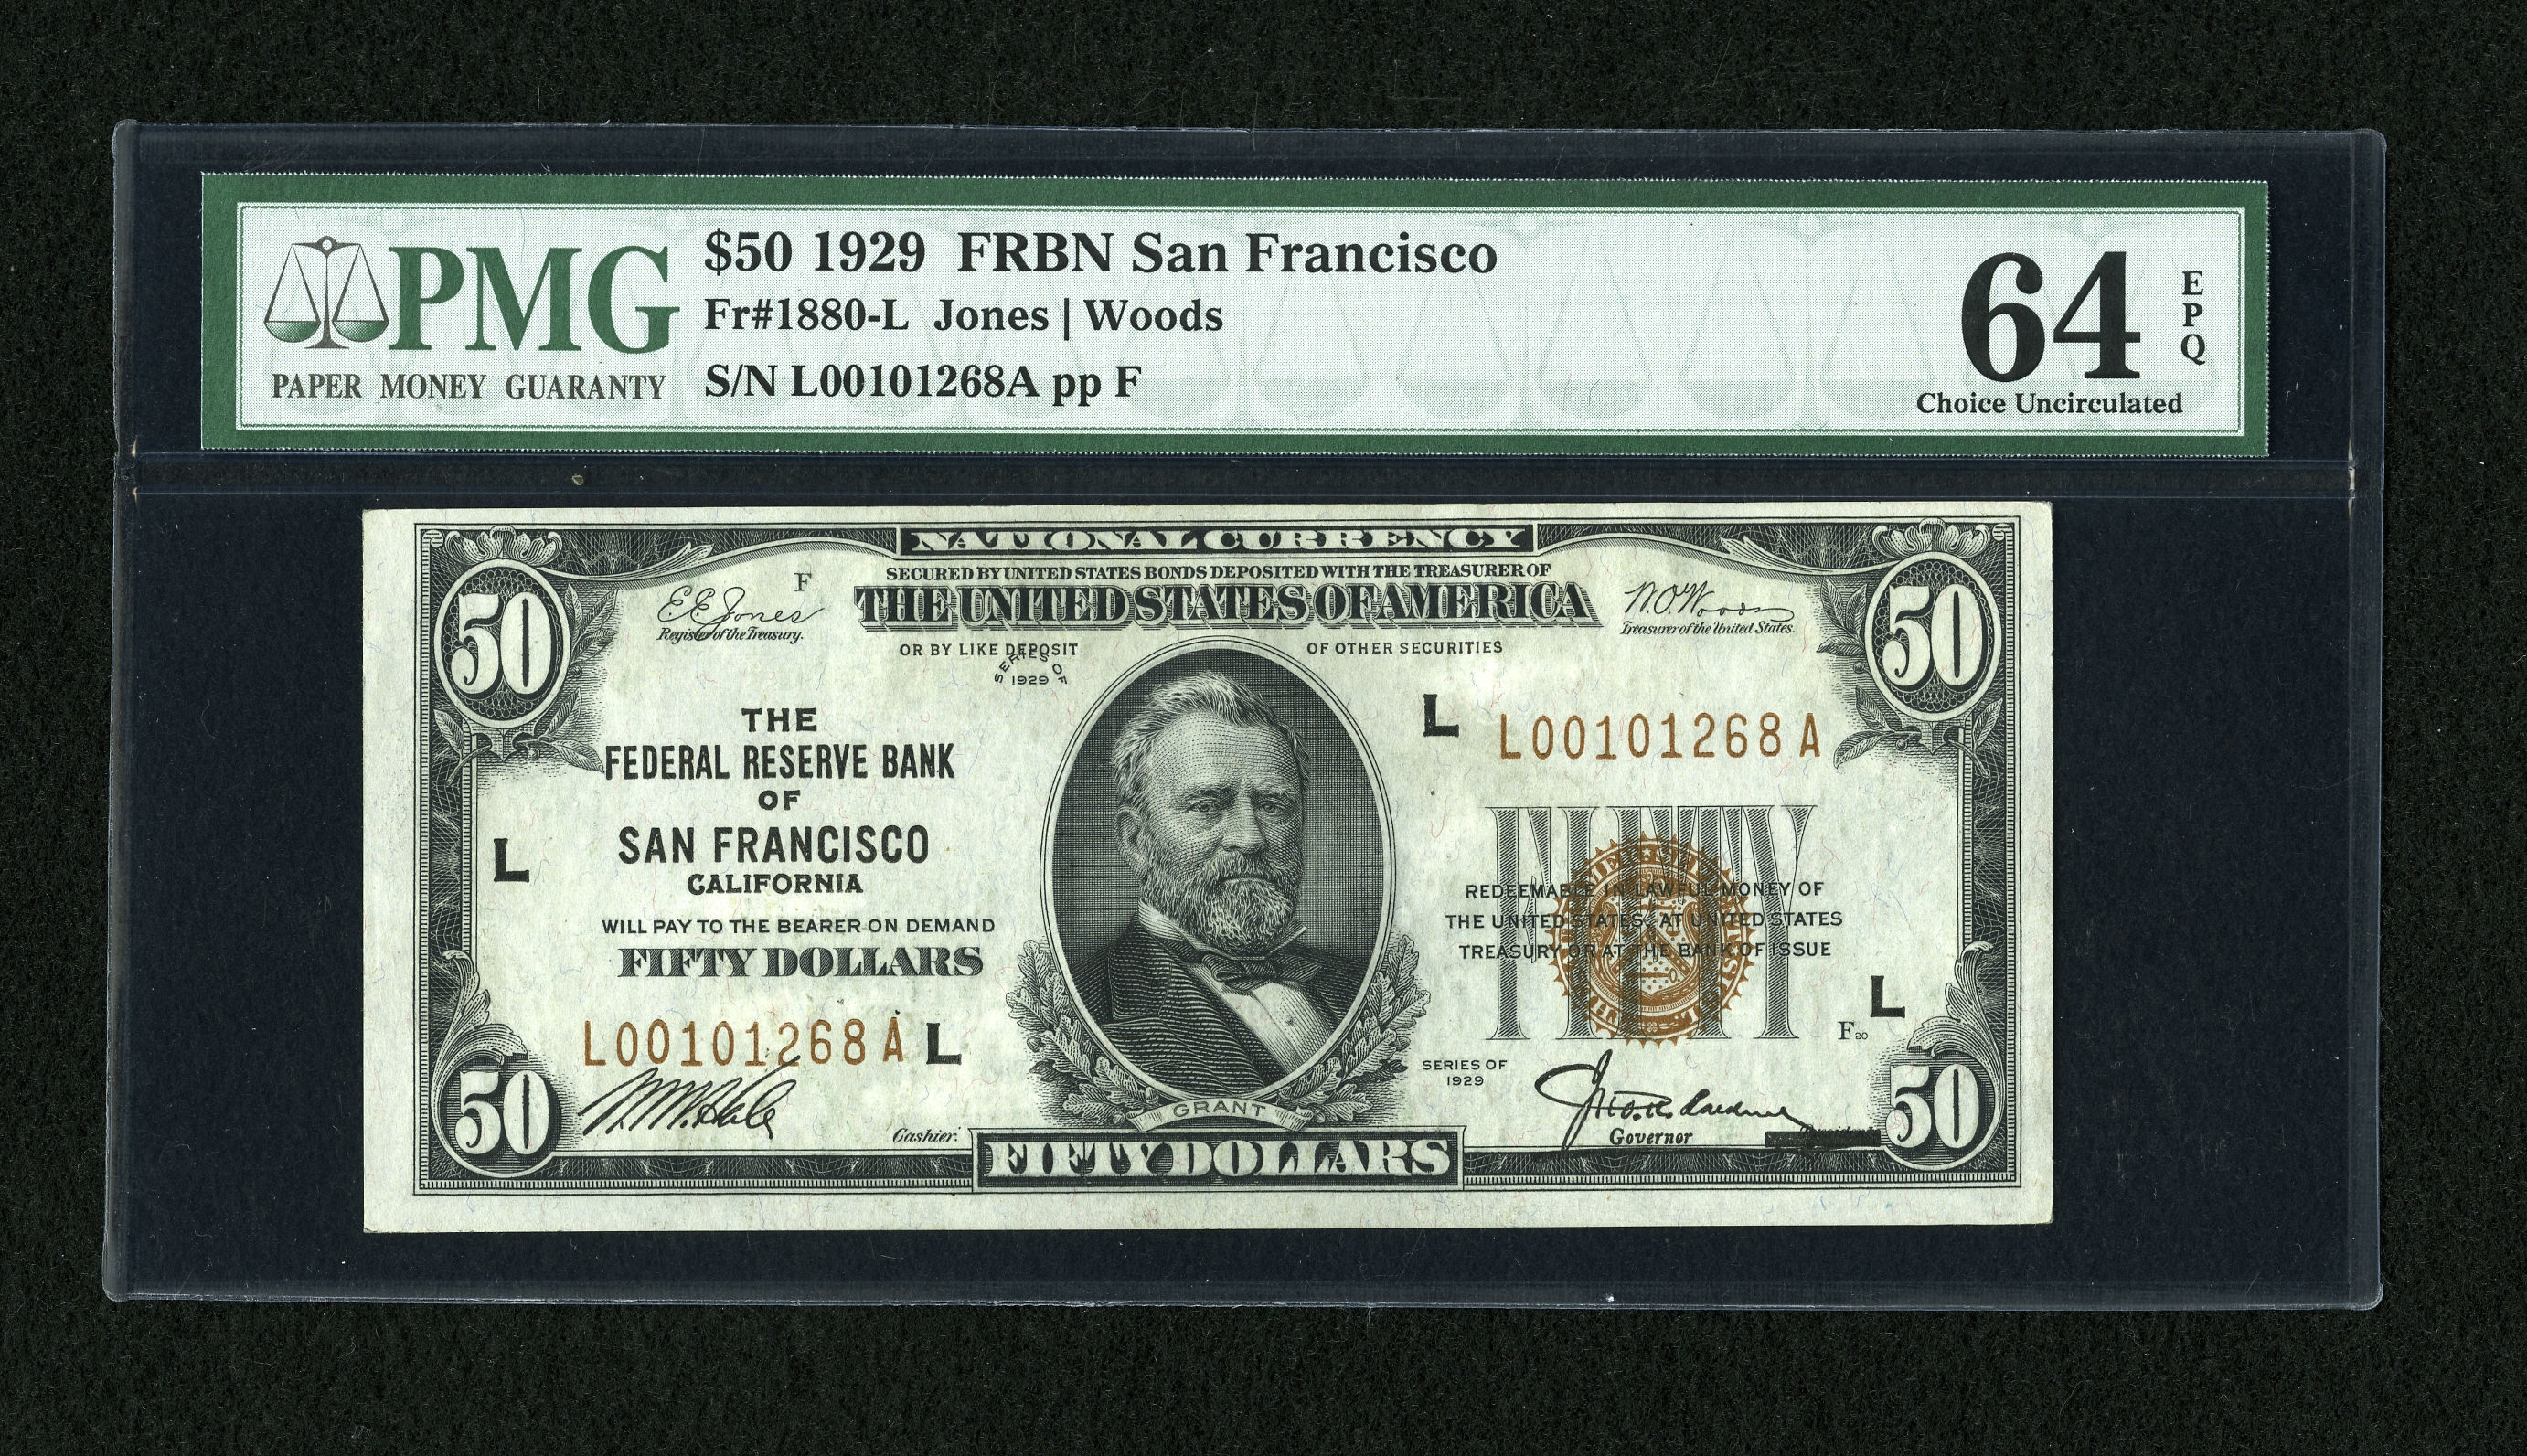 Fr. 1880-L 1929 $50 Federal Reserve Bank Note PMG Choice Unc. 64 - Heritage Auction: May 19, 2009 - Sold for $402.50